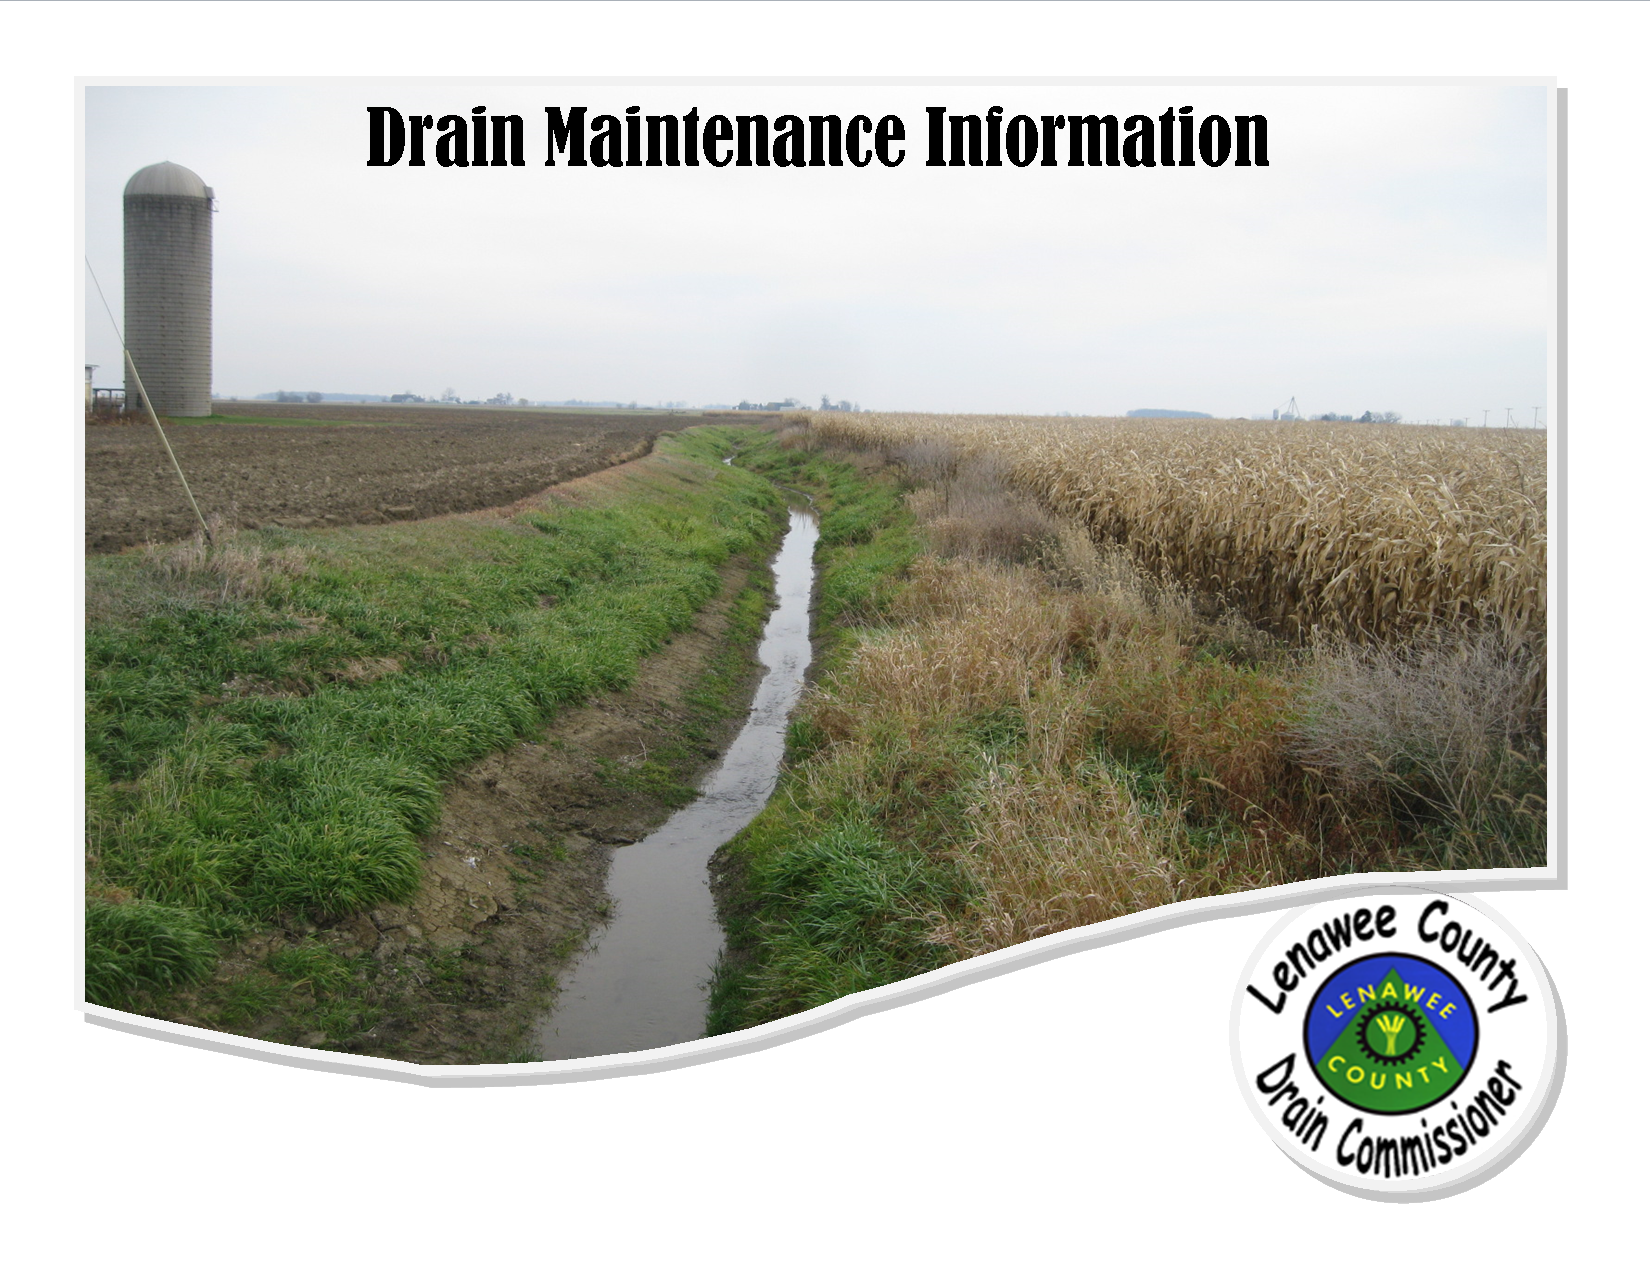 Drain Right-of-Way Vegetation Management Brochure